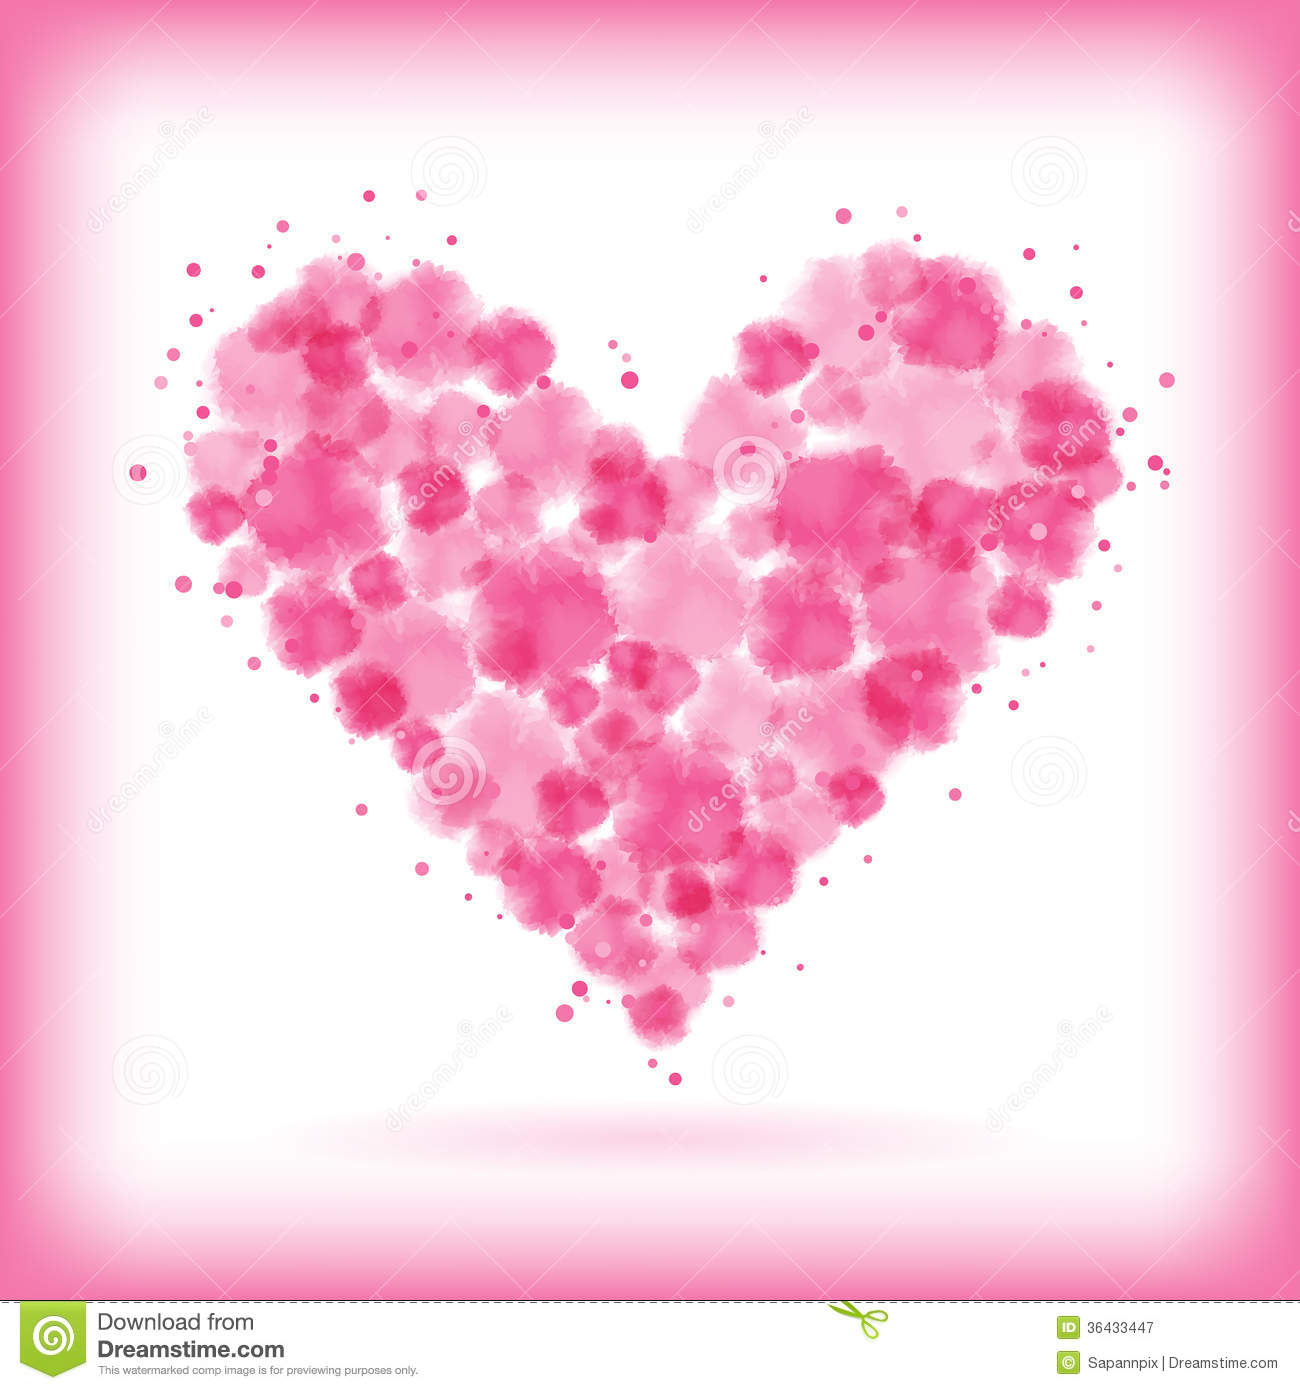 Watercolor Heart Stock Vector Illustration Of Paint